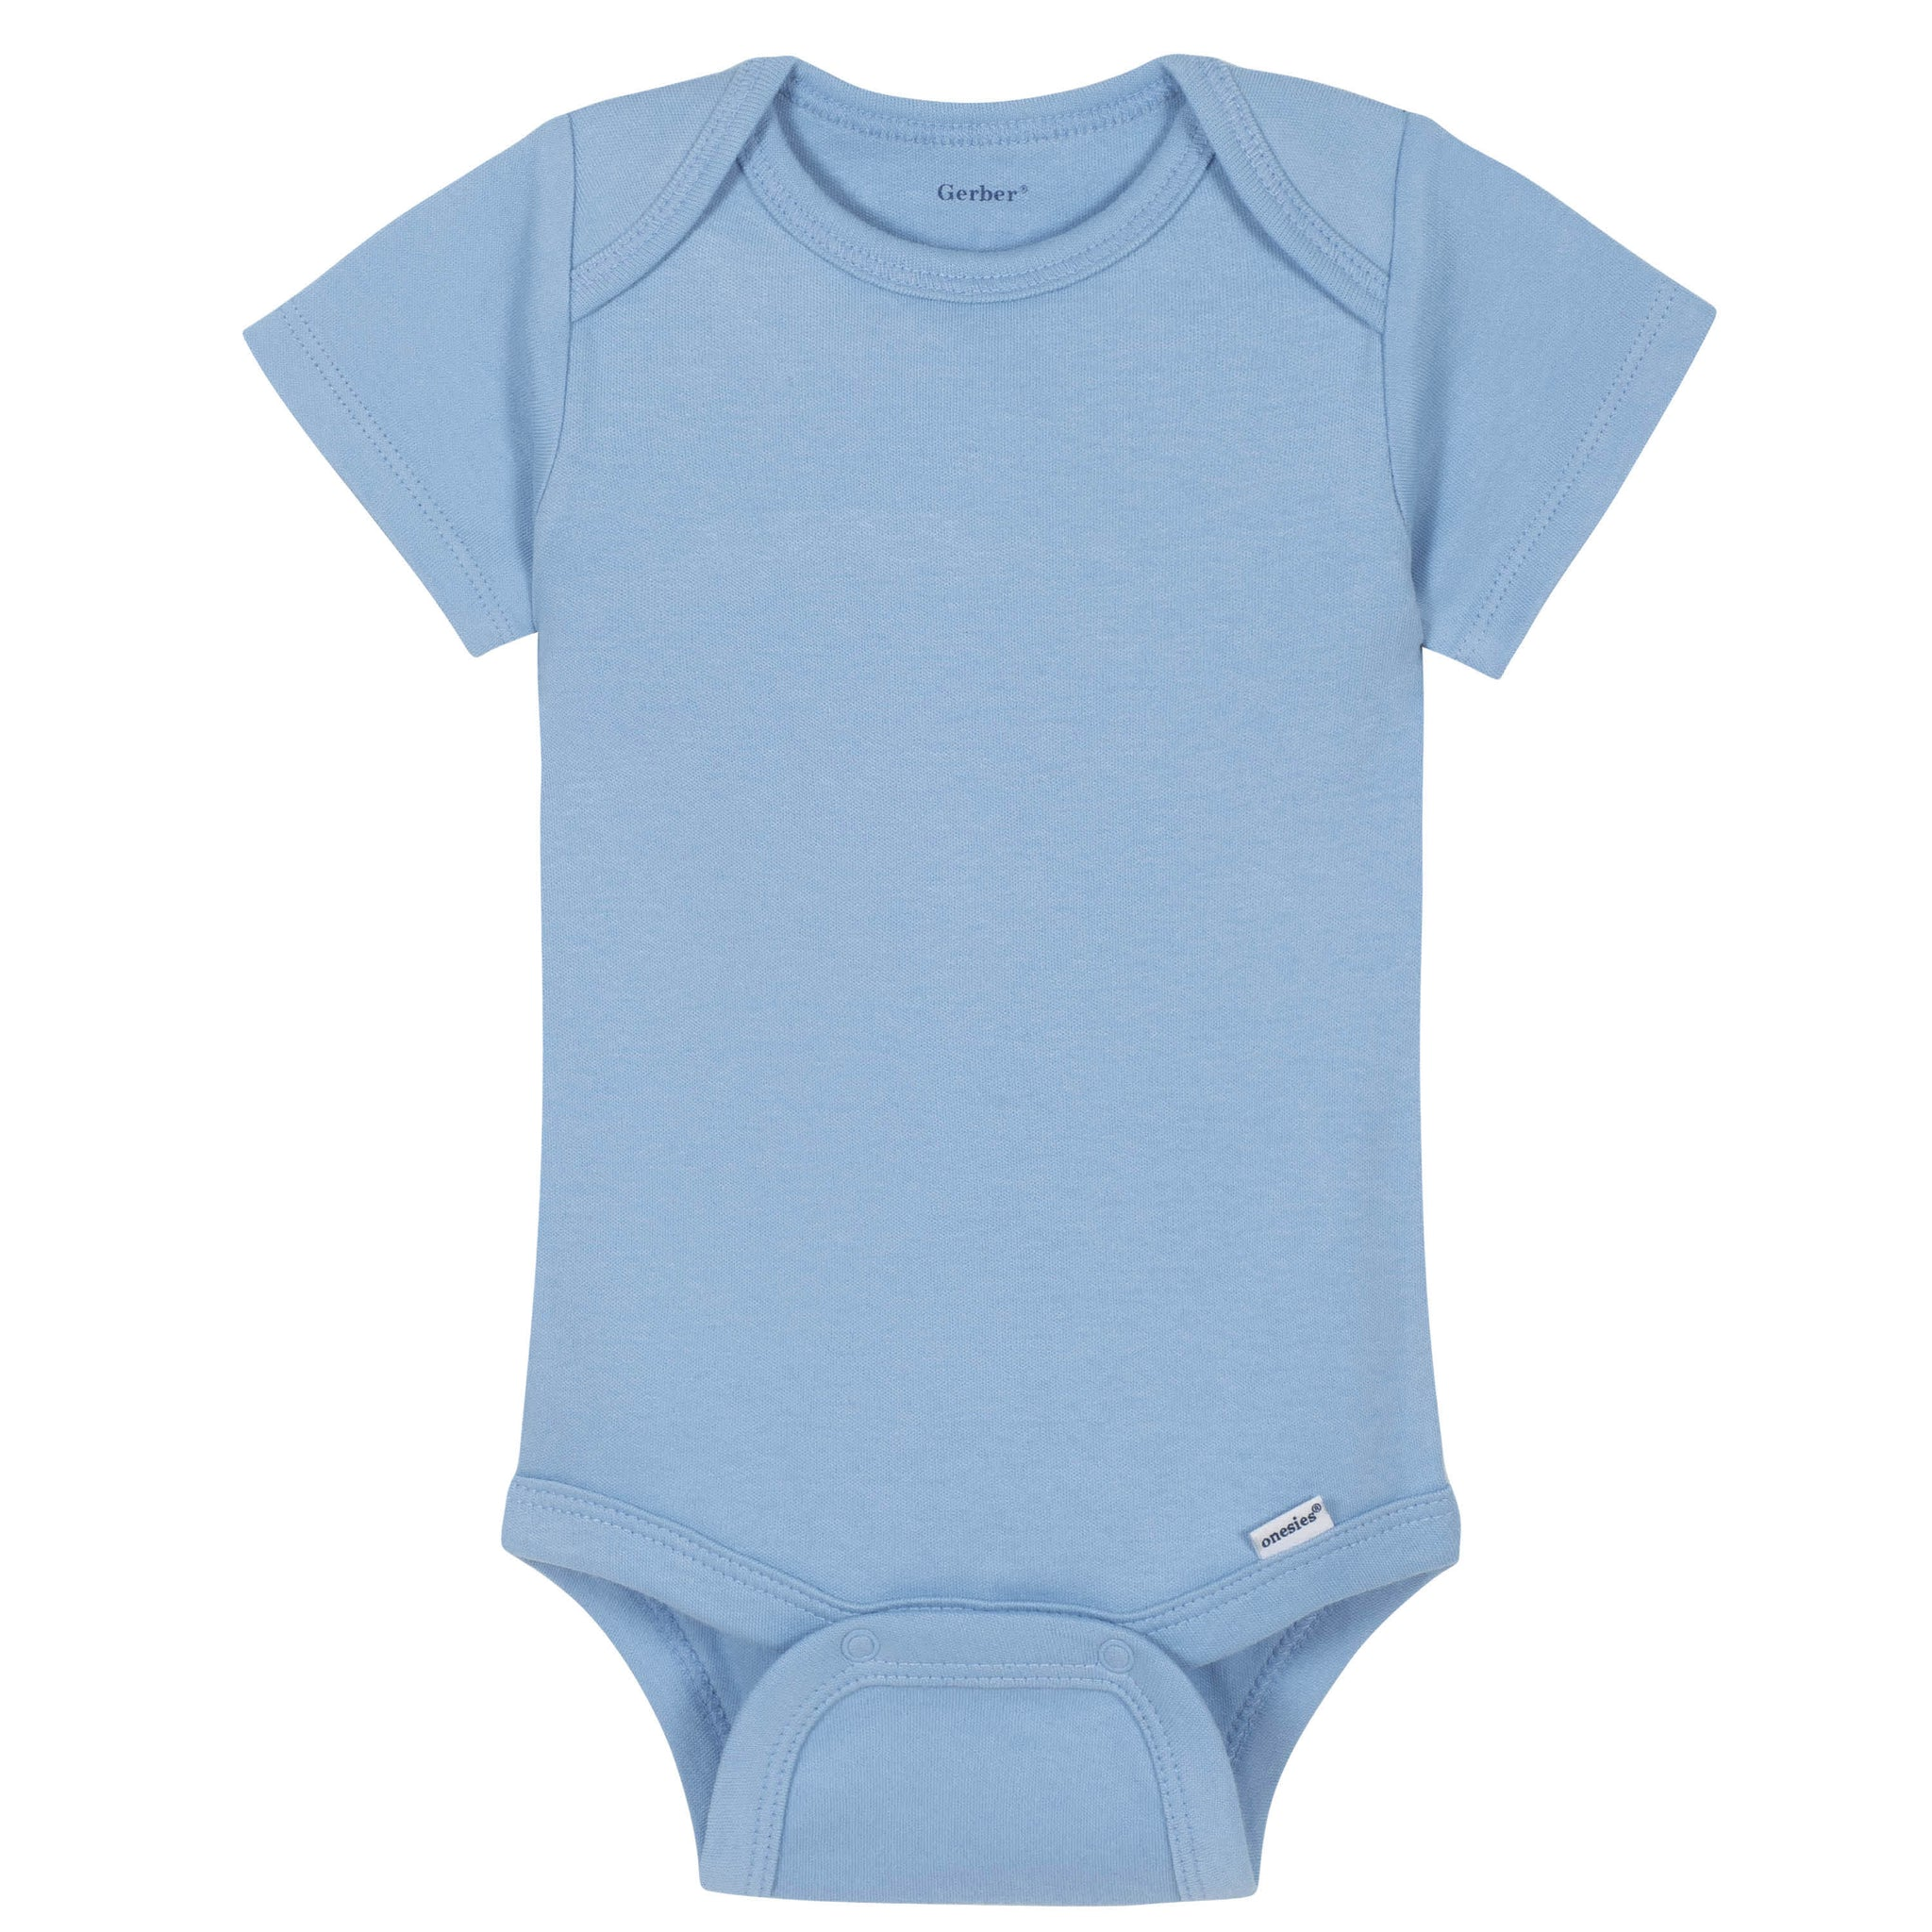 Gerber® Premium Light Blue Short Sleeve Onesies® Brand Bodysuit - 10 Colors Available